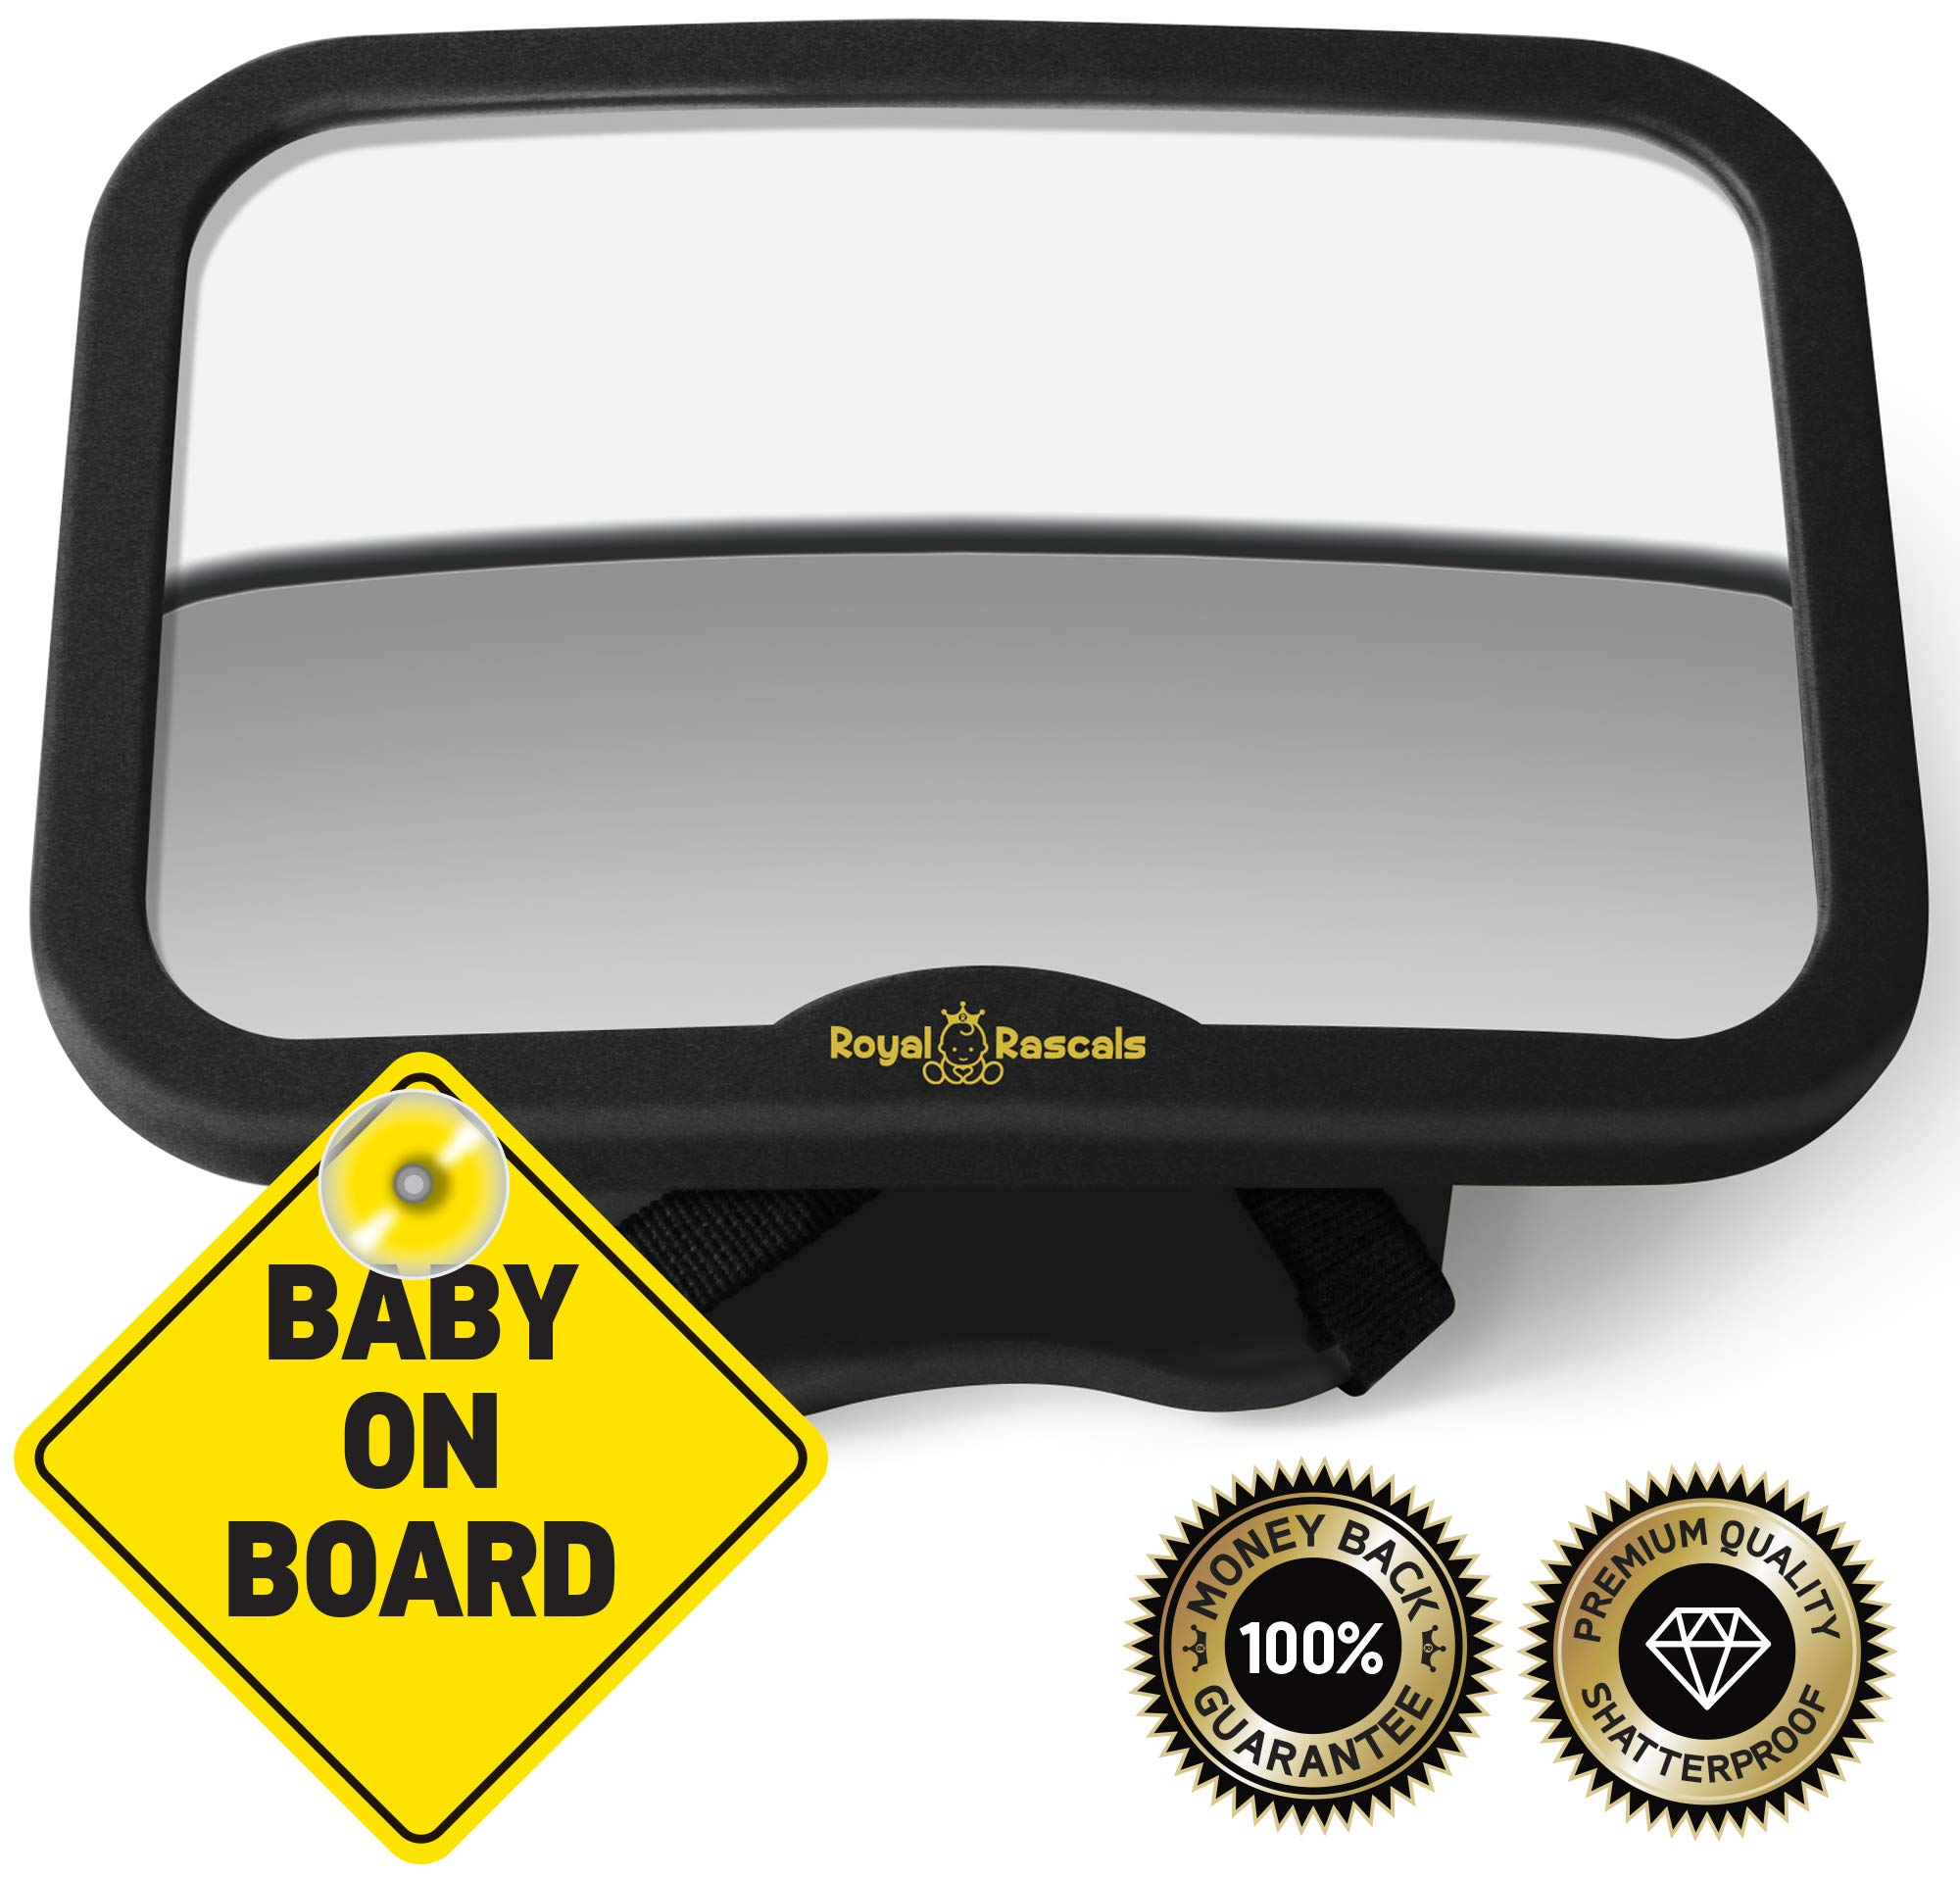 ROYAL RASCALS Baby Car Mirror for Back Seat - Free Baby on Board Sign - Shatterproof Baby Mirror for Car - Rear View Baby Car Seat Mirror to See Rear Facing Infants and Babies by Royal Rascals